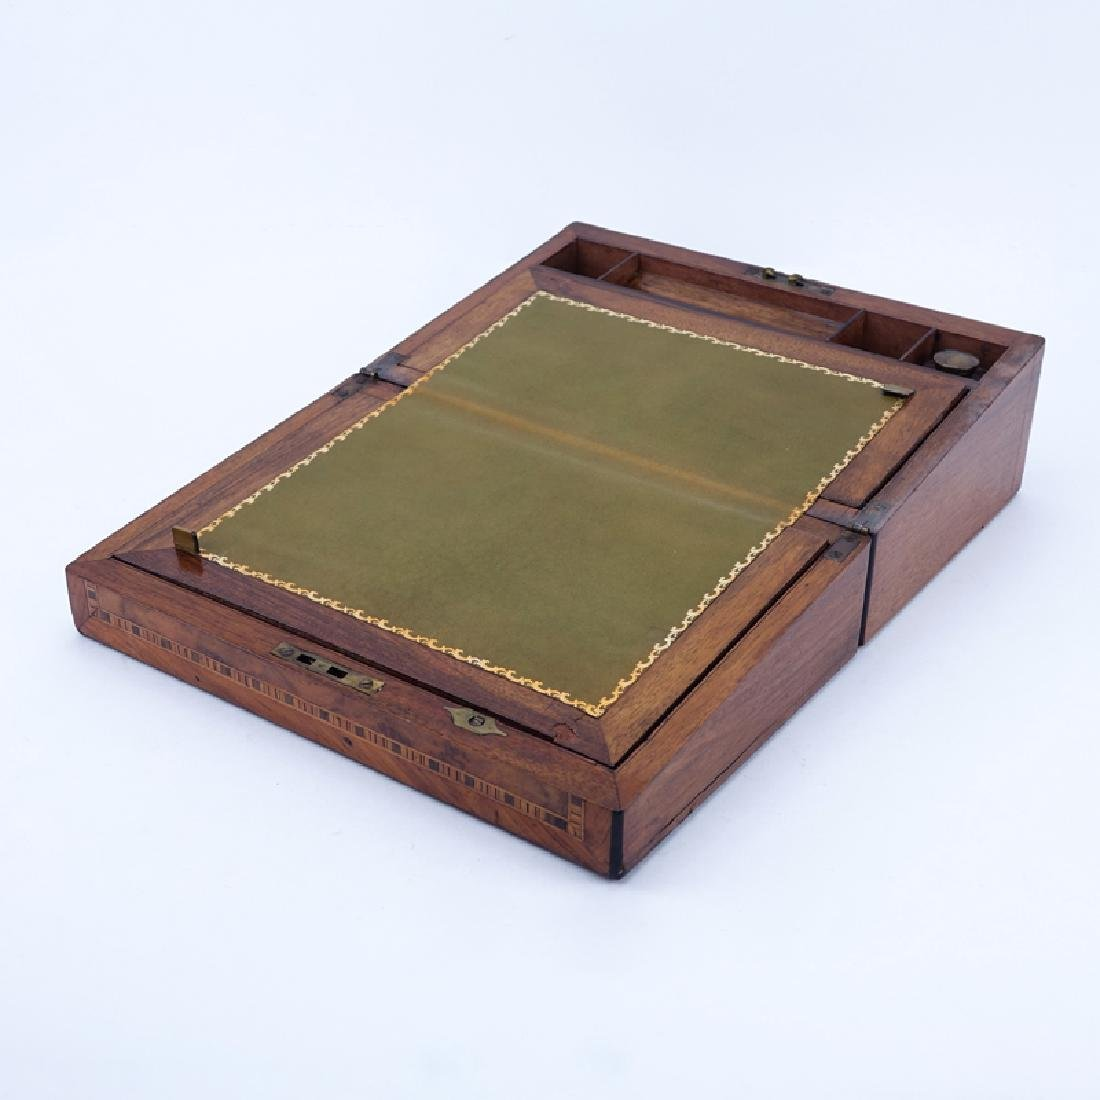 Antique English Writing Box. This box features burled